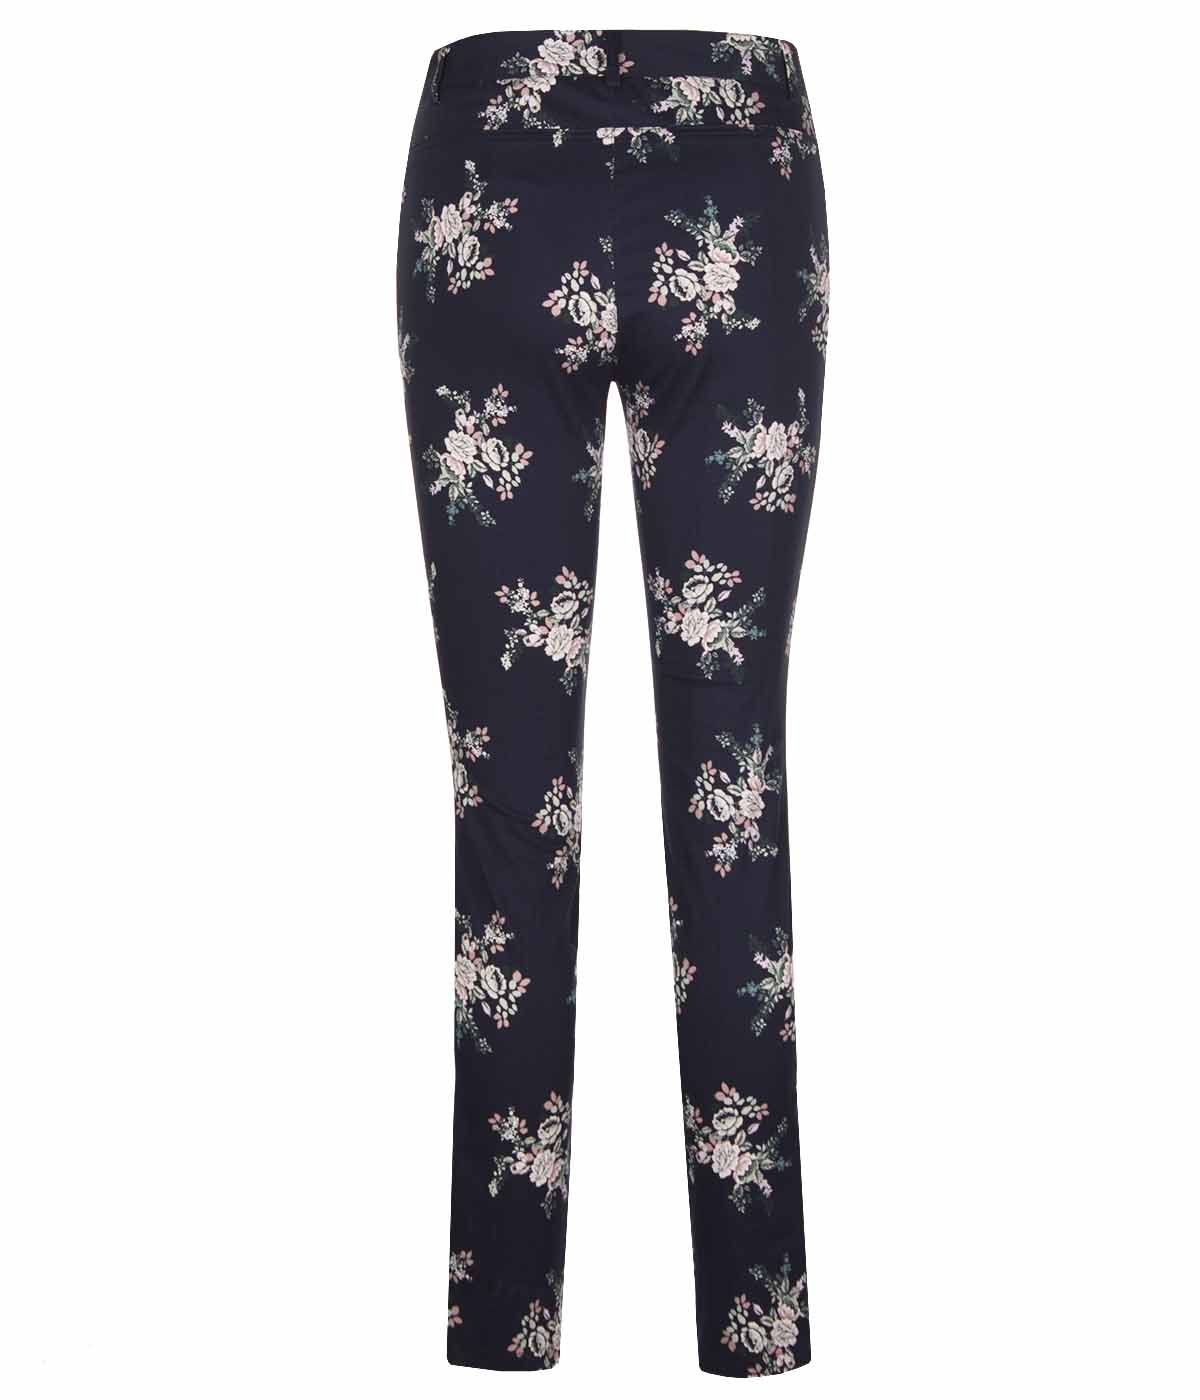 Cotton slim-fit trousers with flowers print 1